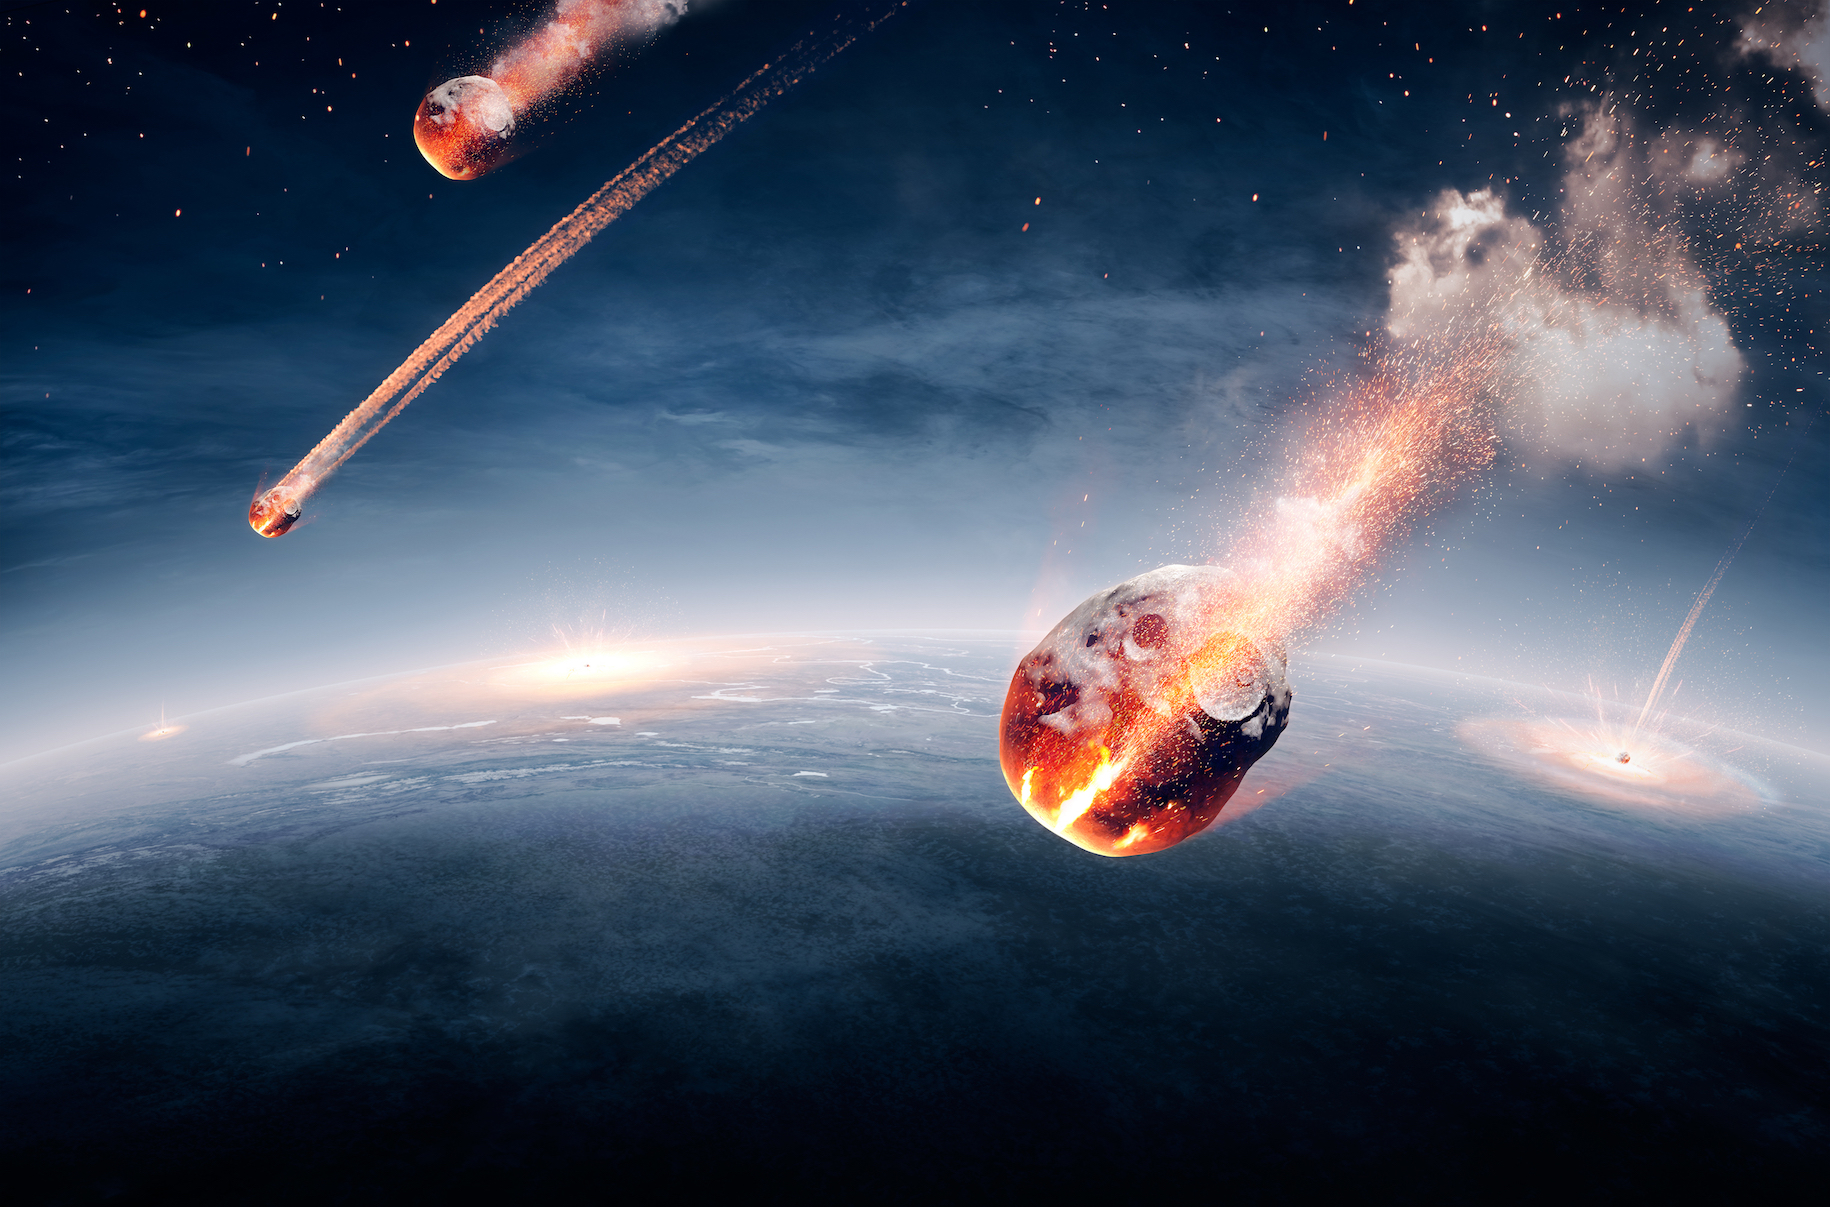 Scientists believe that in the early days of Earth, there was a period of time during which roughly 150 massive meteorite impacts occurred.